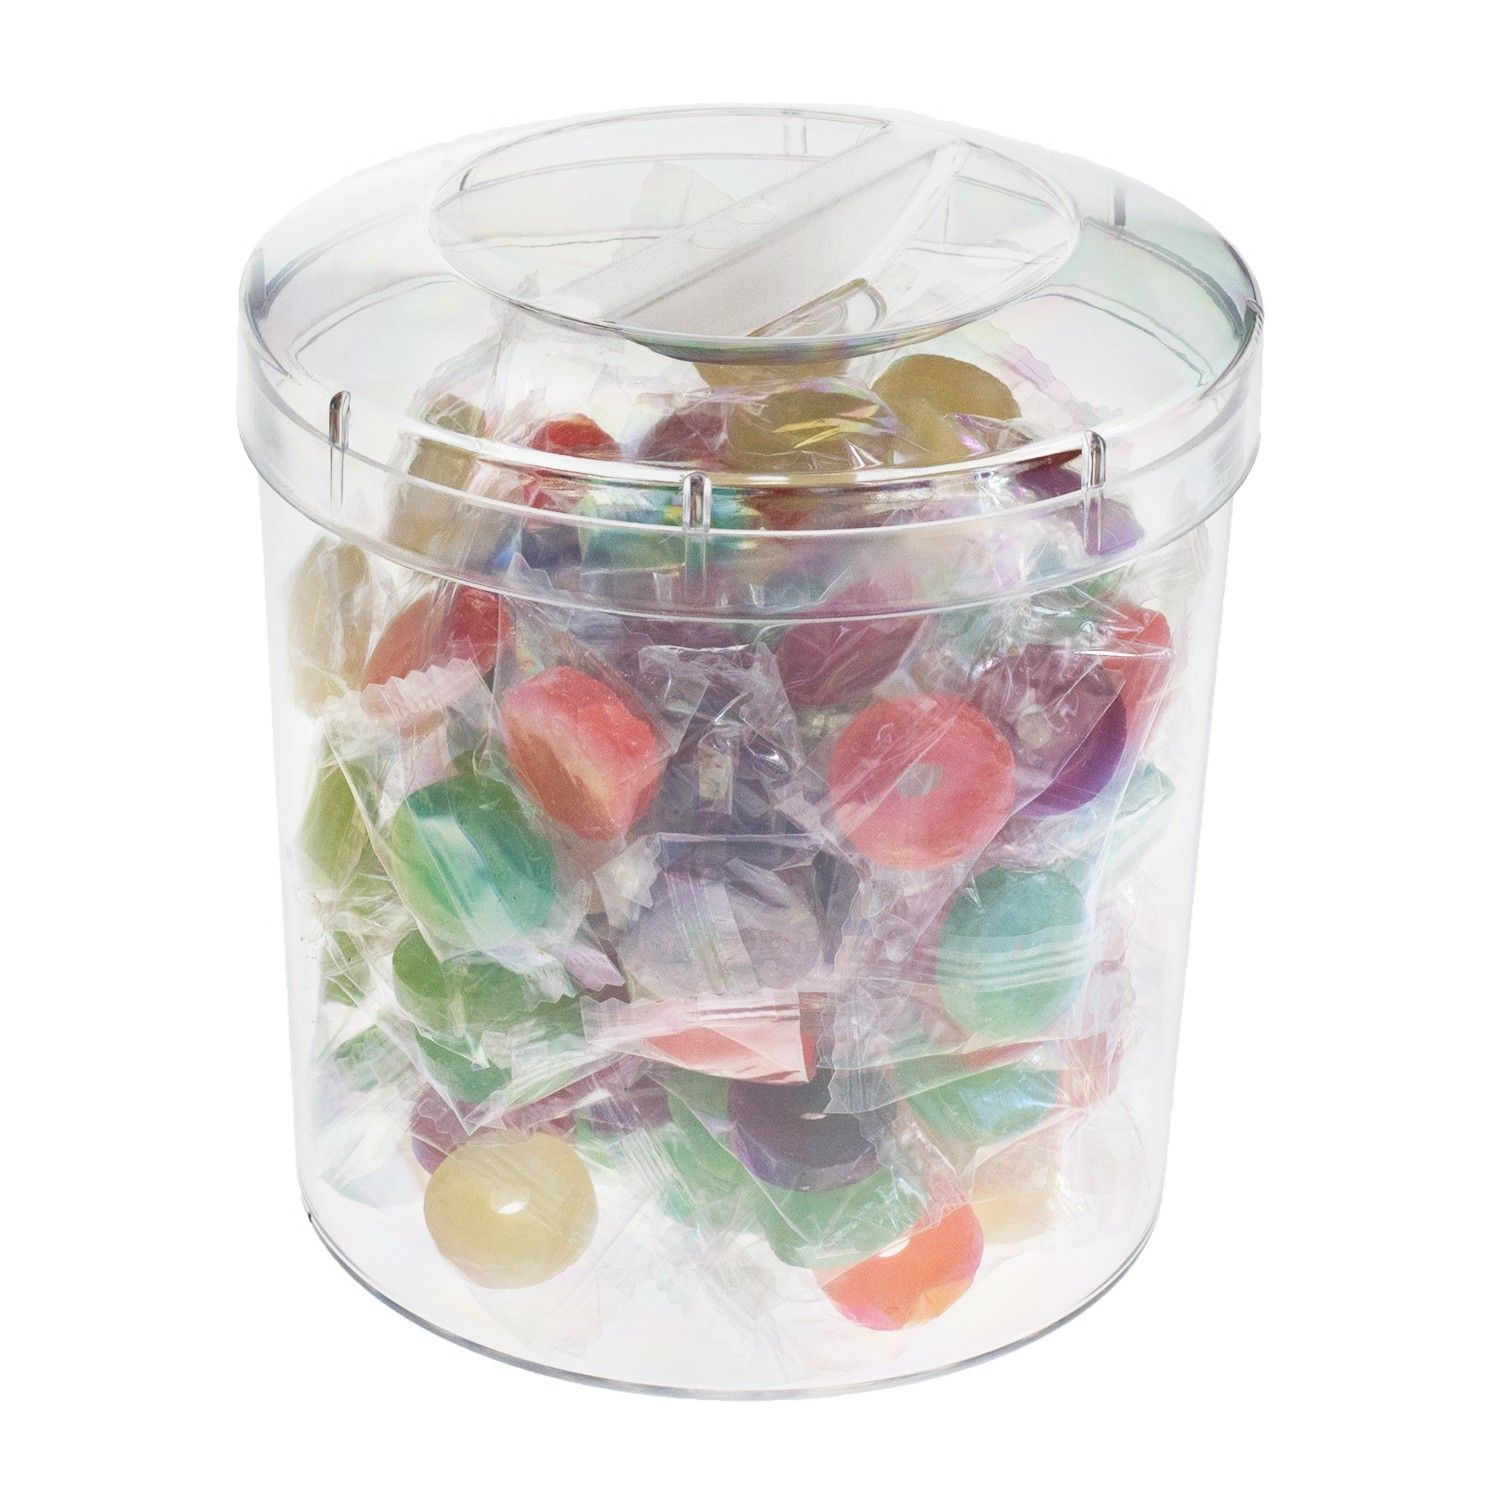 Round Clear Plastic Container Comes With Lid Made From High Quality Food Grade Polystyrene Fda Approved Foo Food Storage Clear Plastic Containers Container